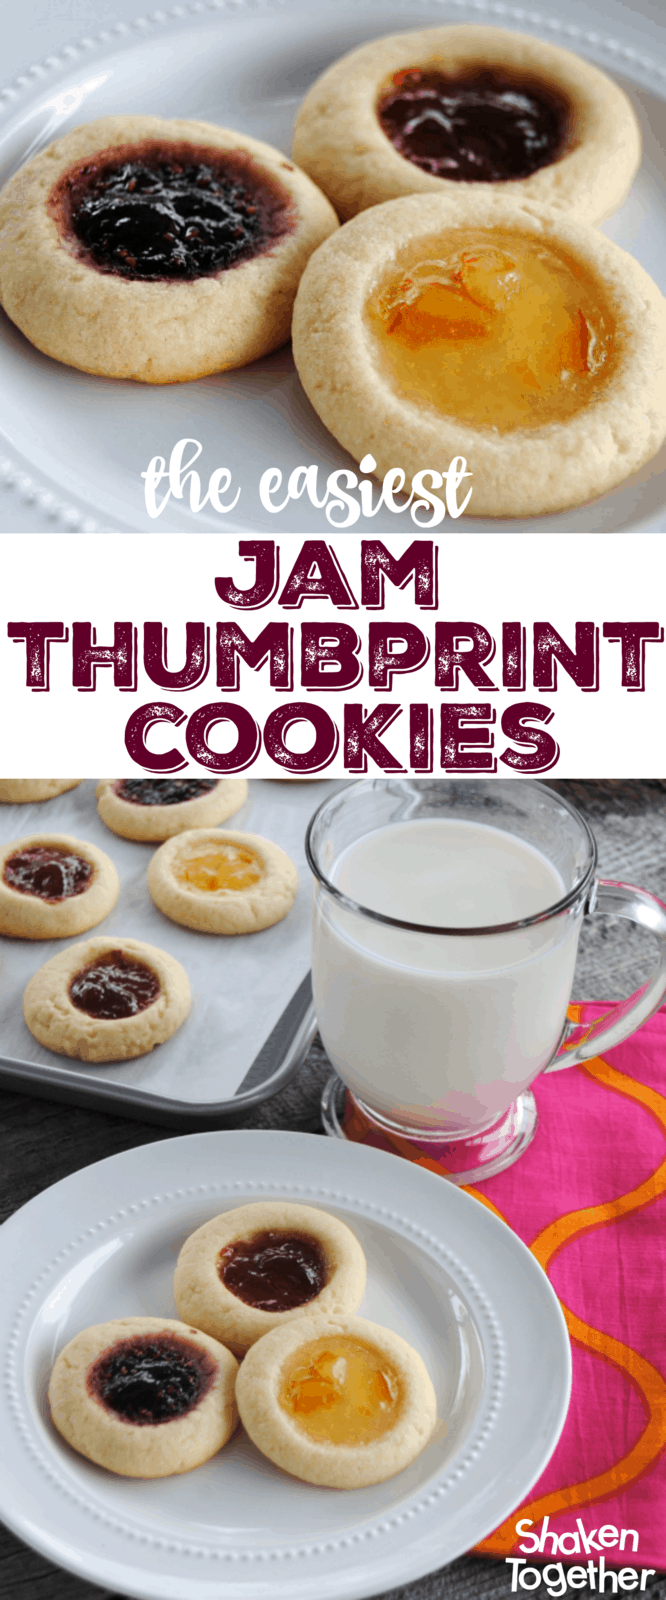 Soft buttery sugar cookies filled with your favorite fruity jam - these might be the easiest Jam Thumbprint Cookies ever!